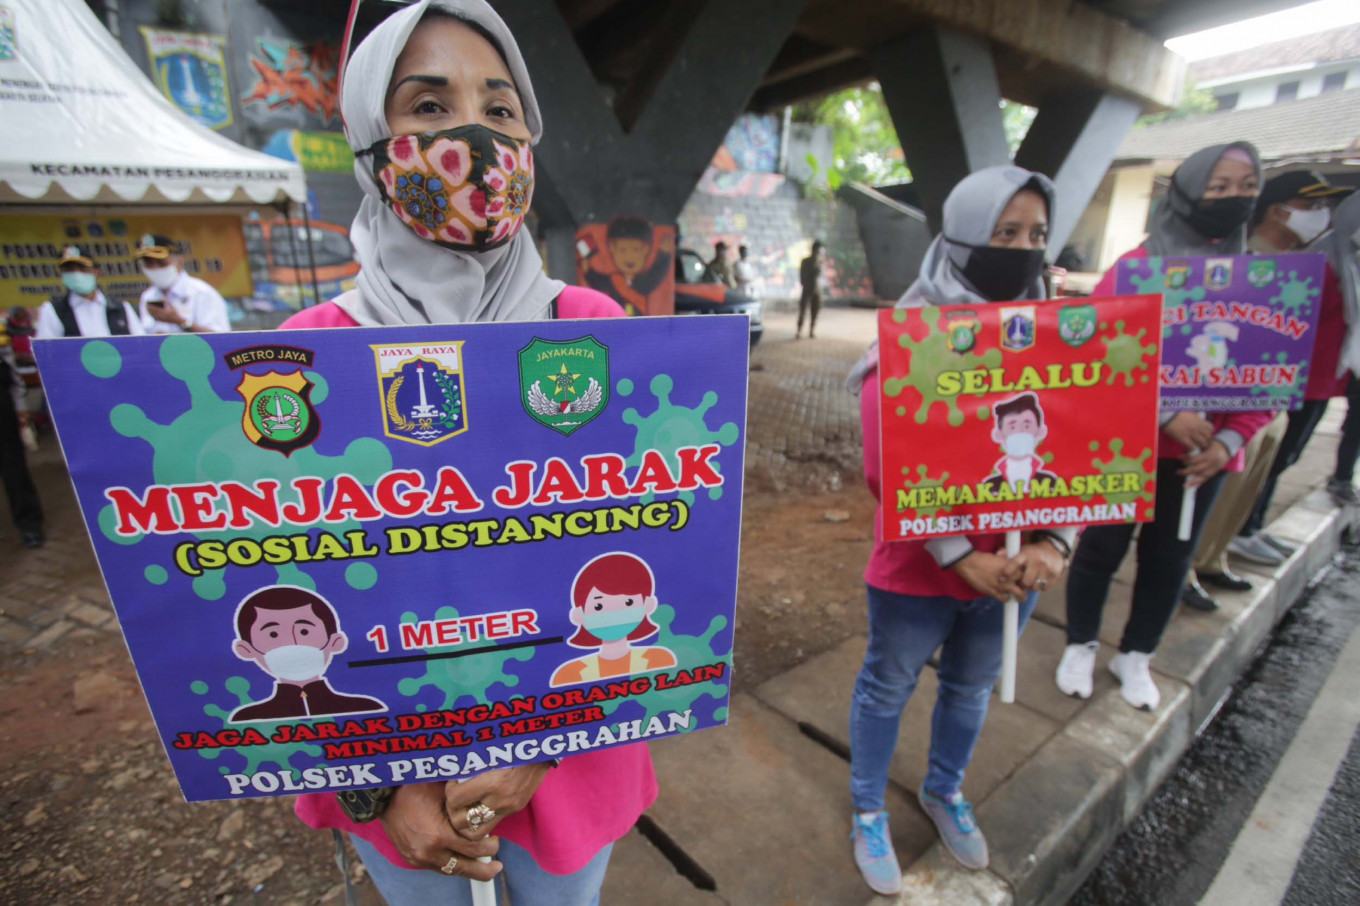 Without PSBB, Jakarta would see 20,000 active COVID-19 cases by November: Anies